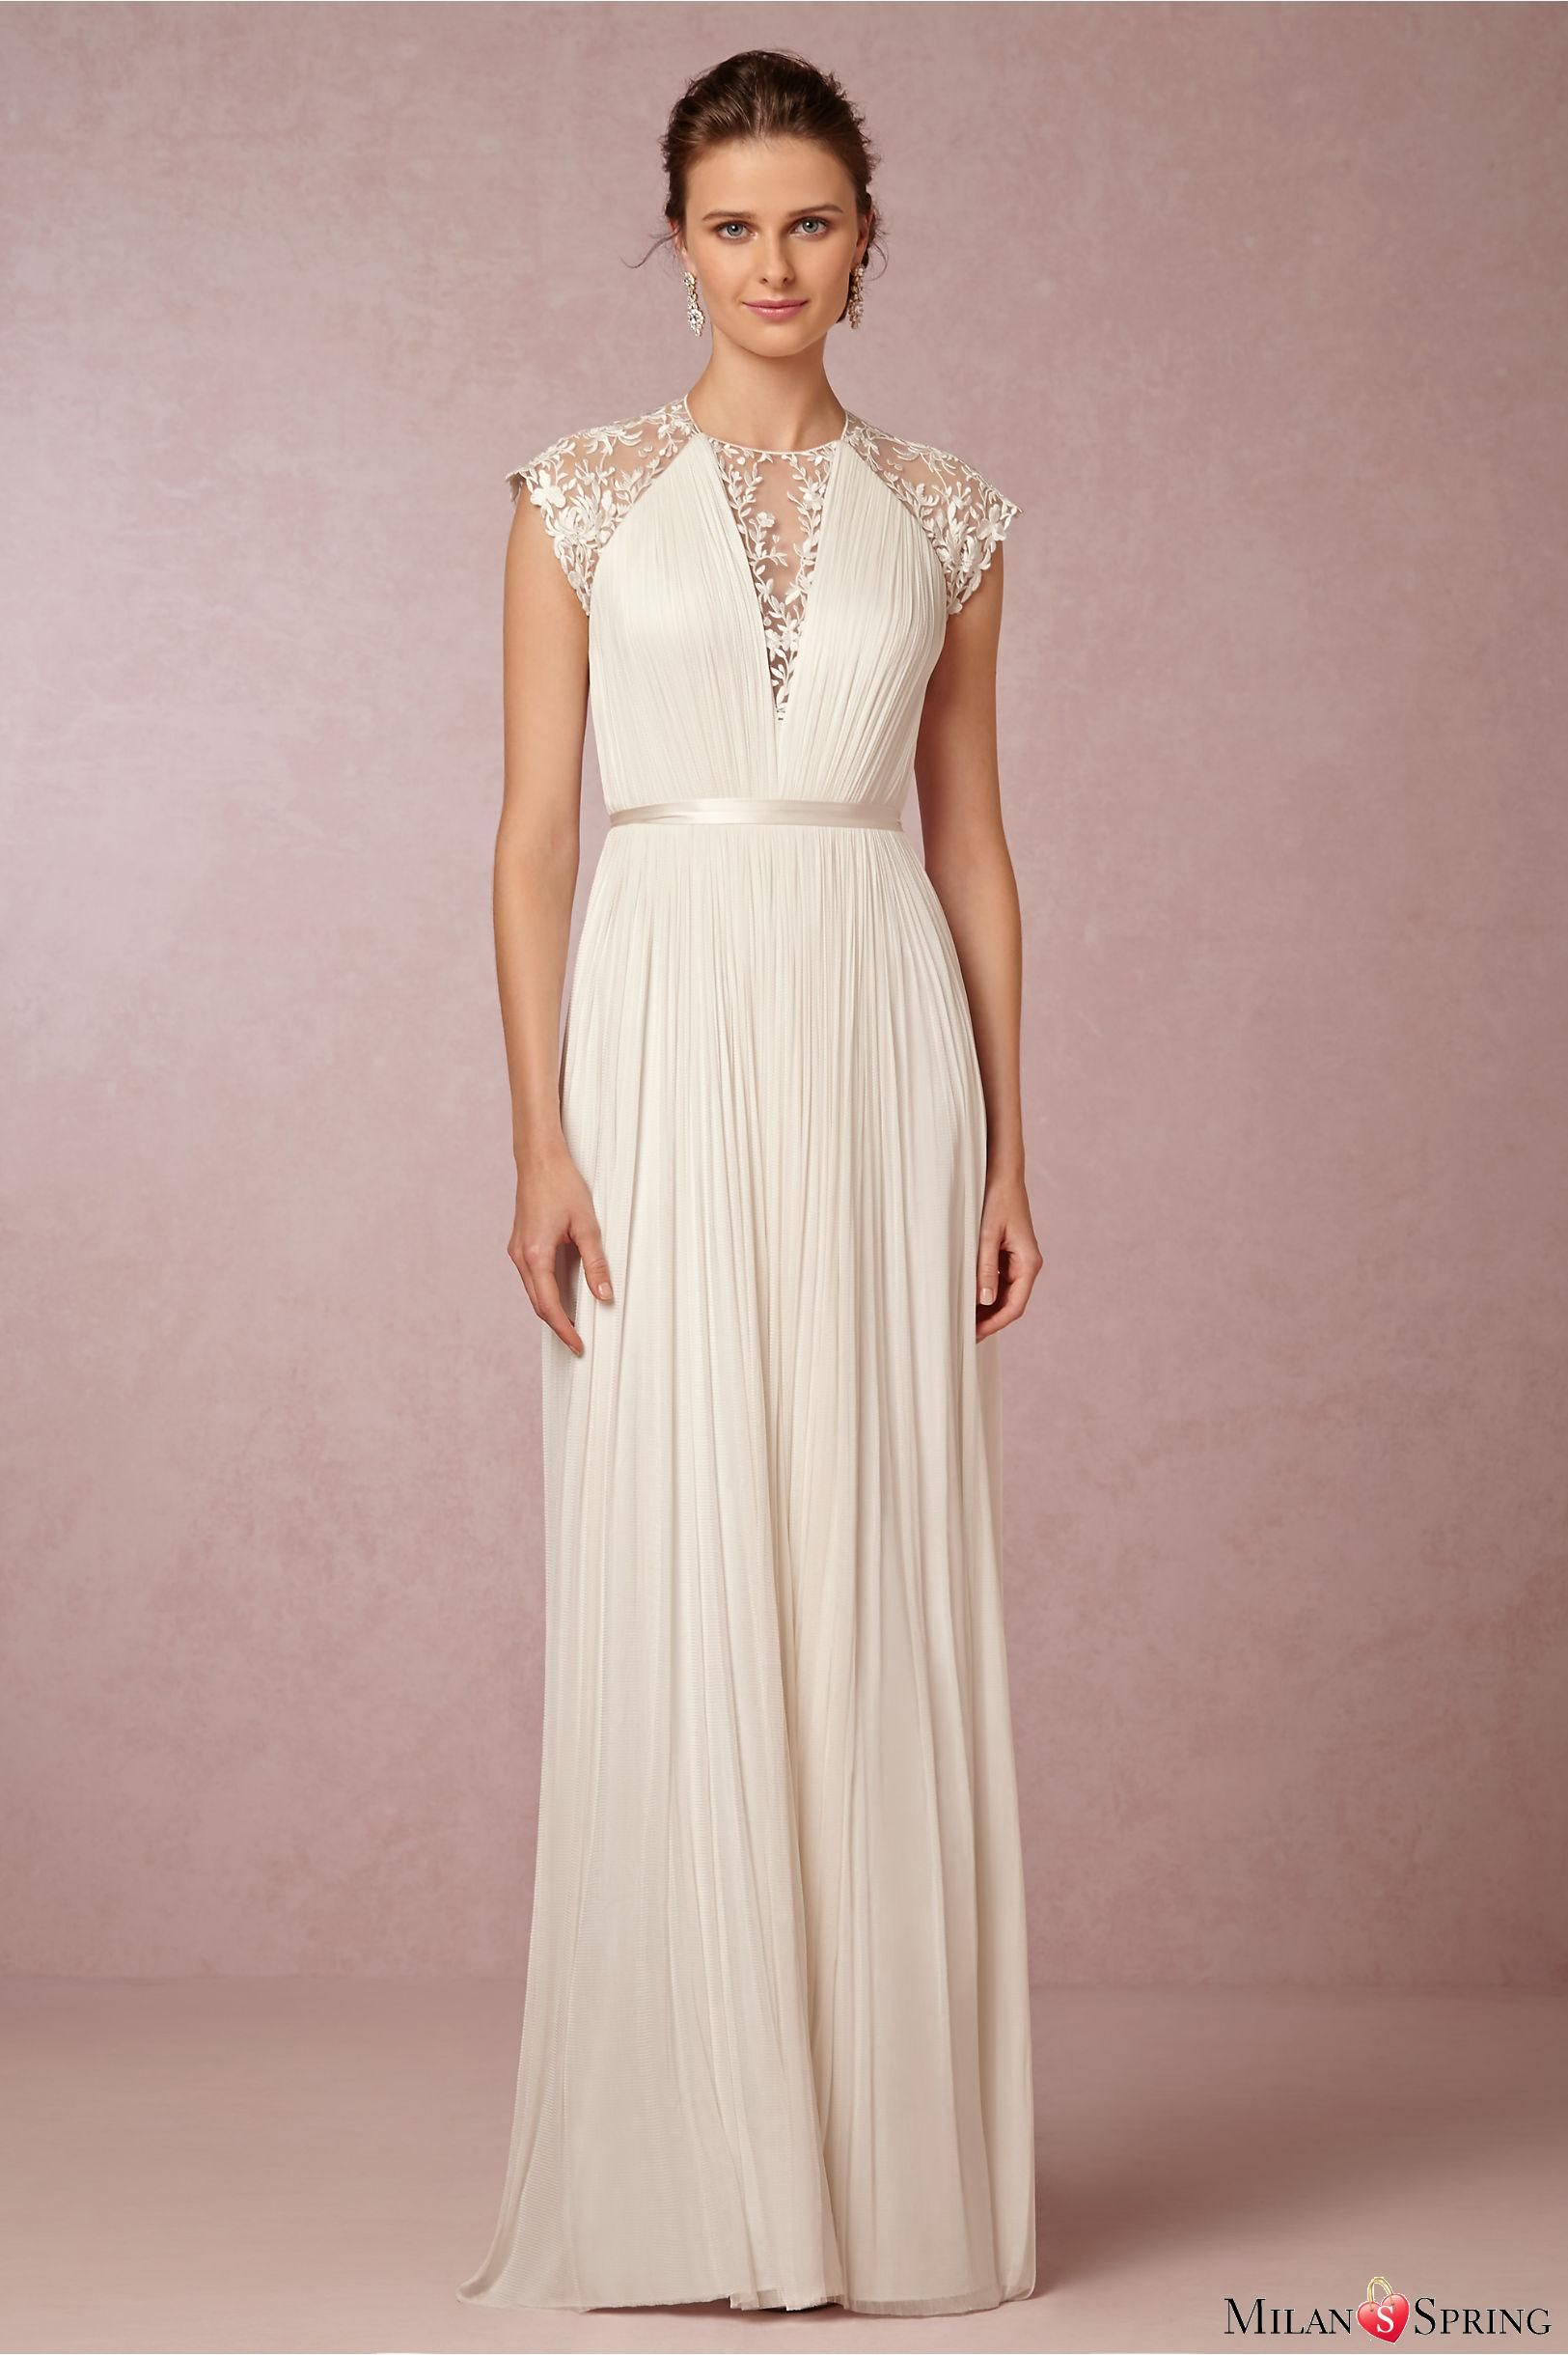 Luxury Straight Lace Up Sashes Silk Tulle Silhouette Embroidered Back Wedding Dress